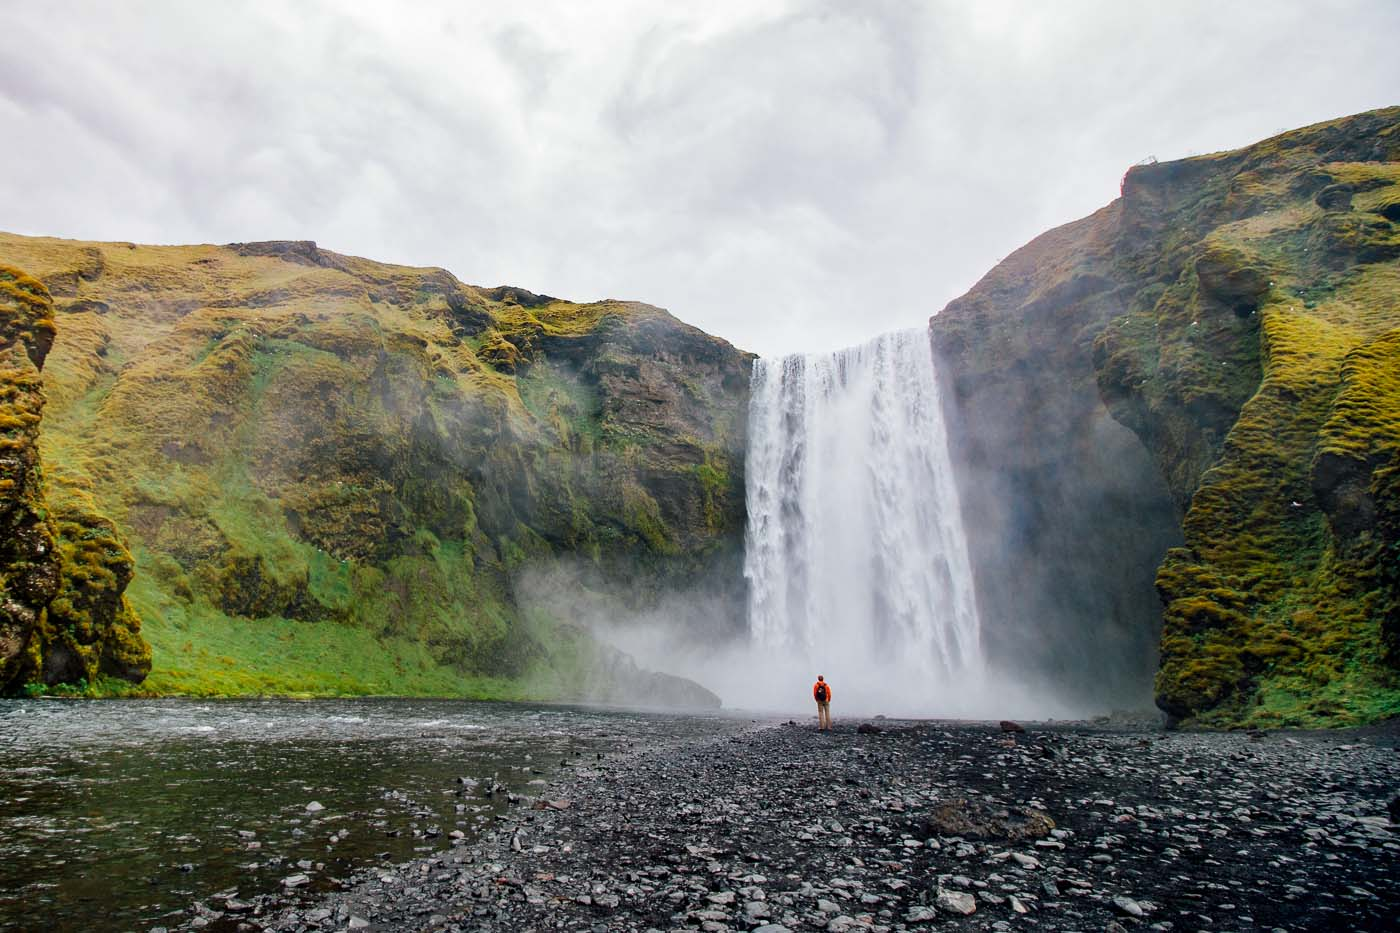 Man in an orange raincoat standing in front of the Skógafoss waterfall